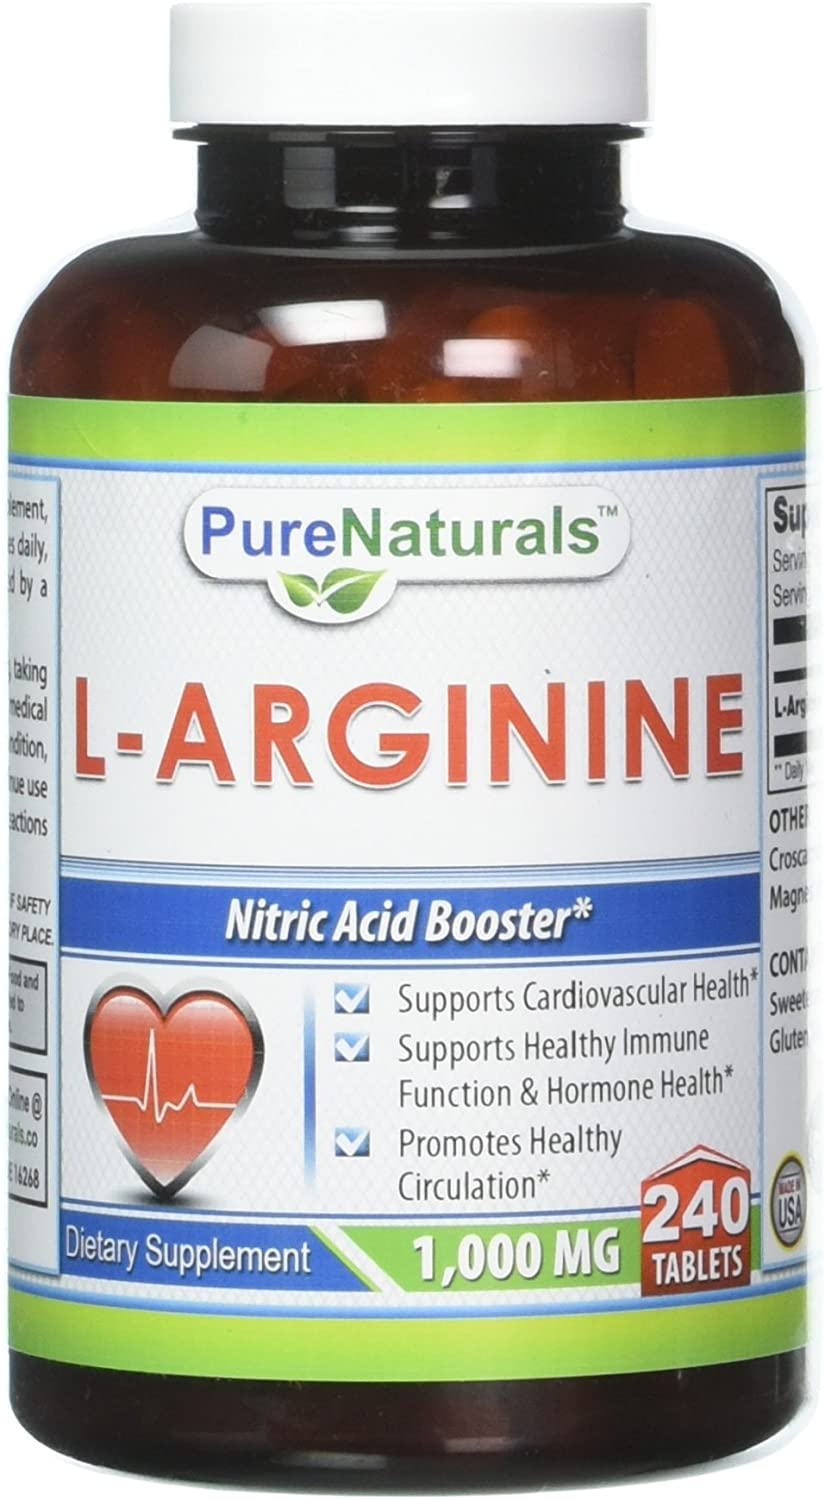 Pure Naturals L-Arginine 1000 Mg, 240 Tablets Supports Cardiovascular Health* Supports Healthy Immune Function & Hormone Health* Promotes Healthy Circulation*